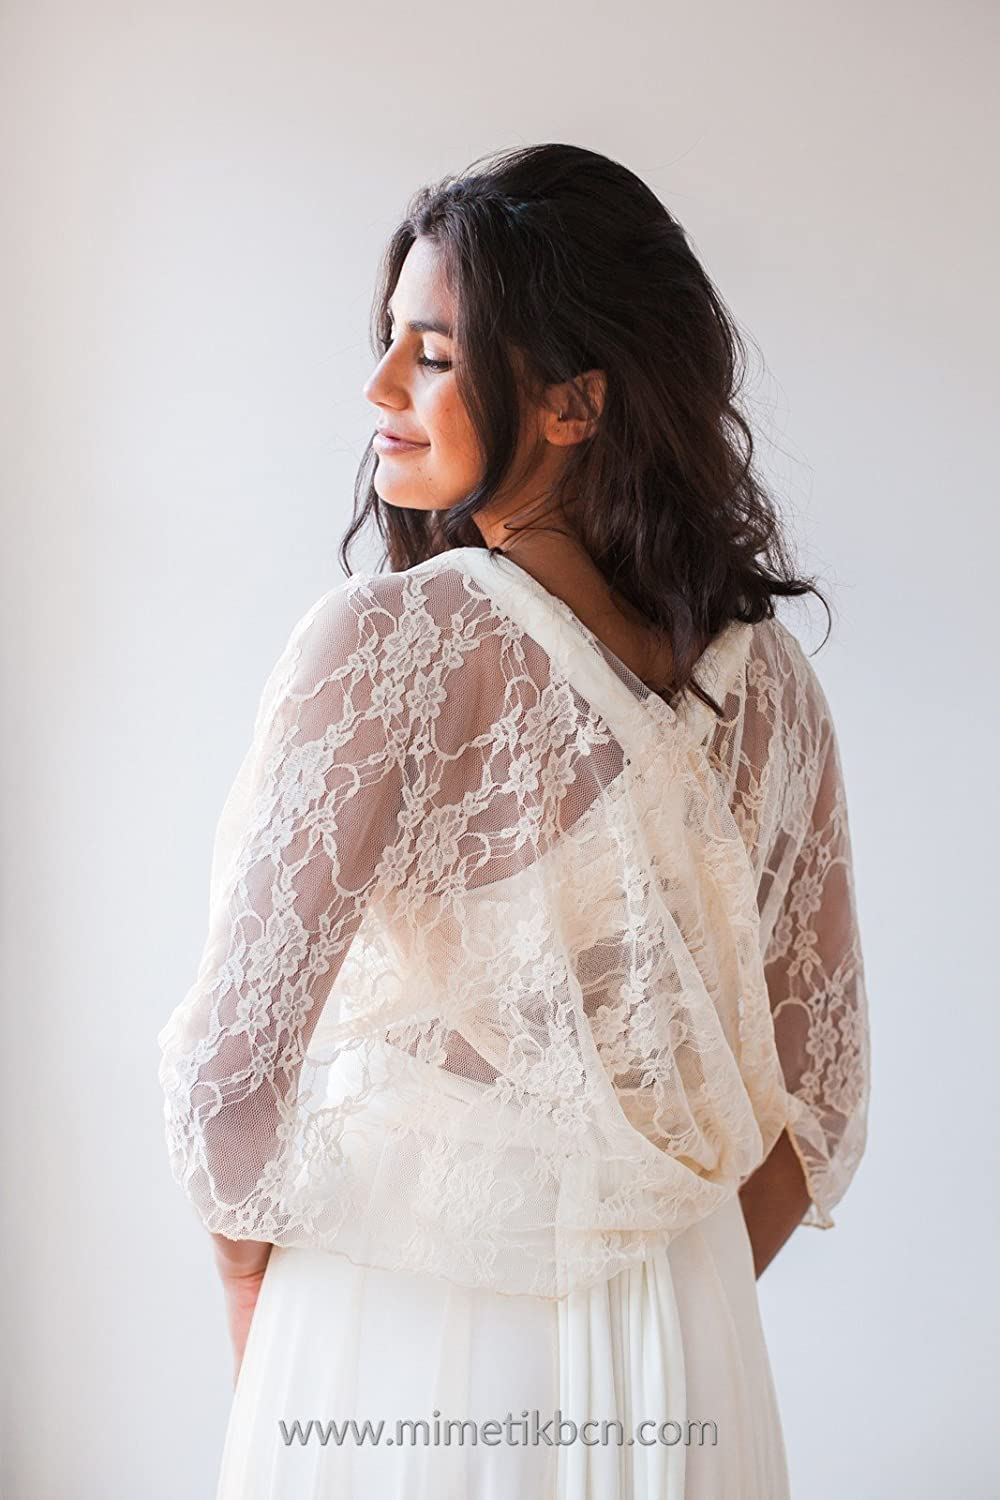 Amazon.com: Wedding shawl, wedding lace shawl, wedding cover up, lace cover up, lace wedding shawl, lace bolero, bridal shawl, lace cover up, ...